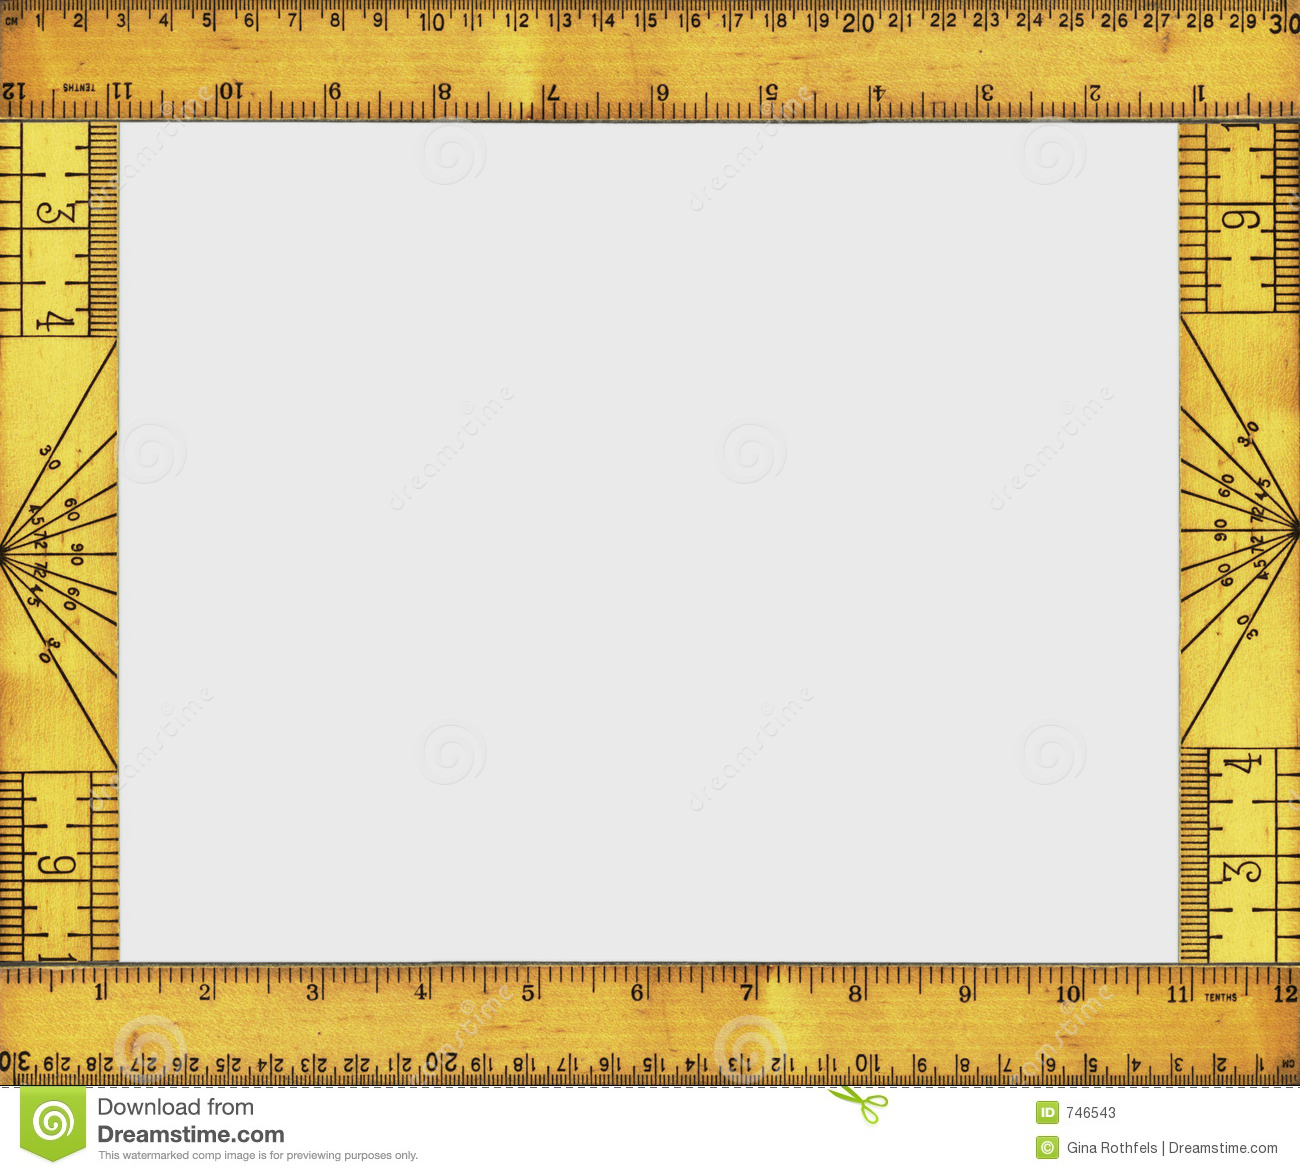 Frame made up of the back and front views of a vintage wooden ruler.